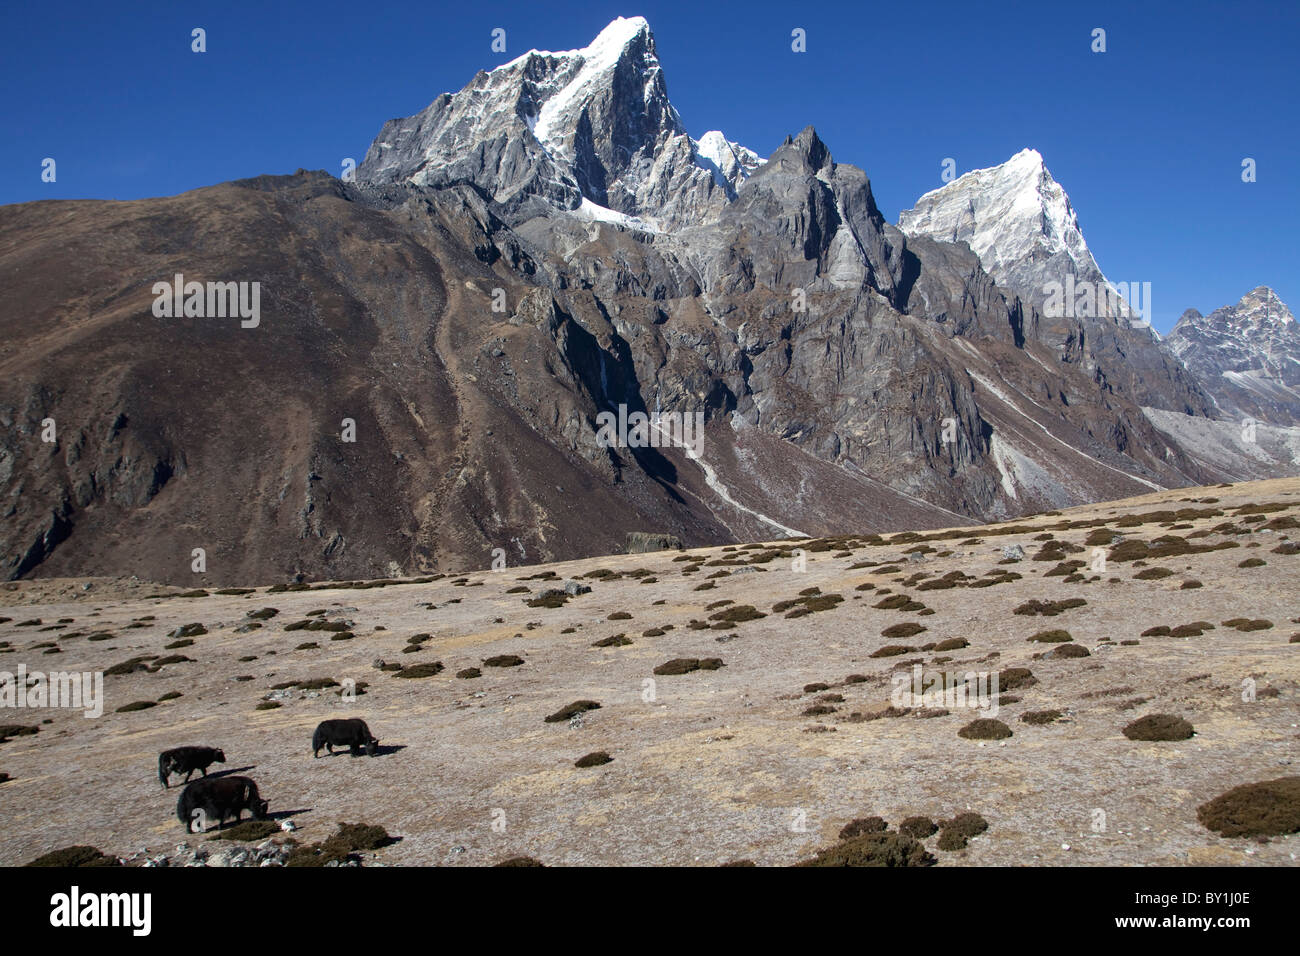 Nepal, Everest Region, Khumbu Valley.   On the pasture above Periche yaks graze on the Everest Base Camp Trail - Stock Image